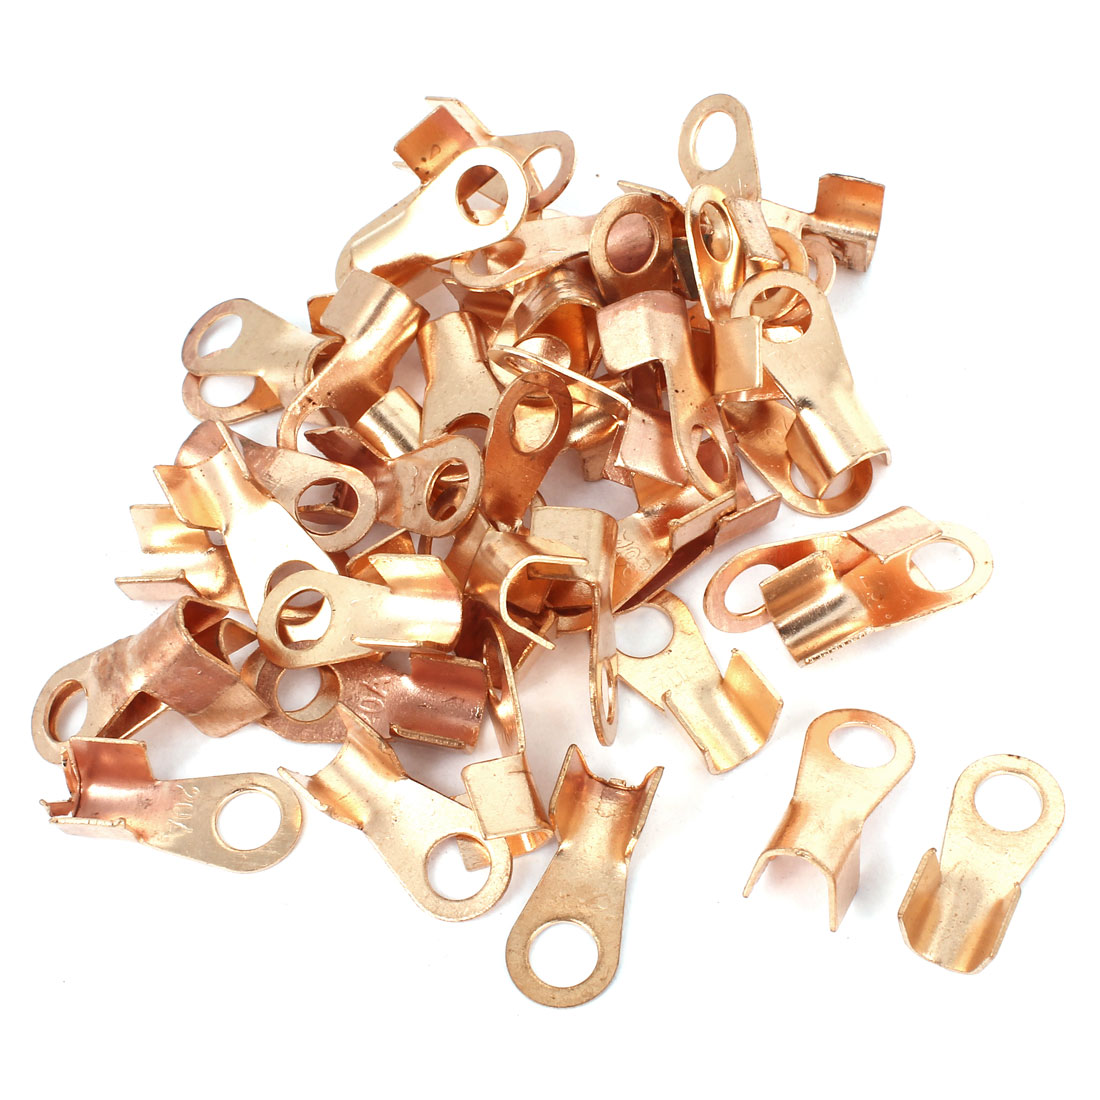 50 Pcs 20A Open Cable Connector Ring Lug Copper Passing Through Terminals